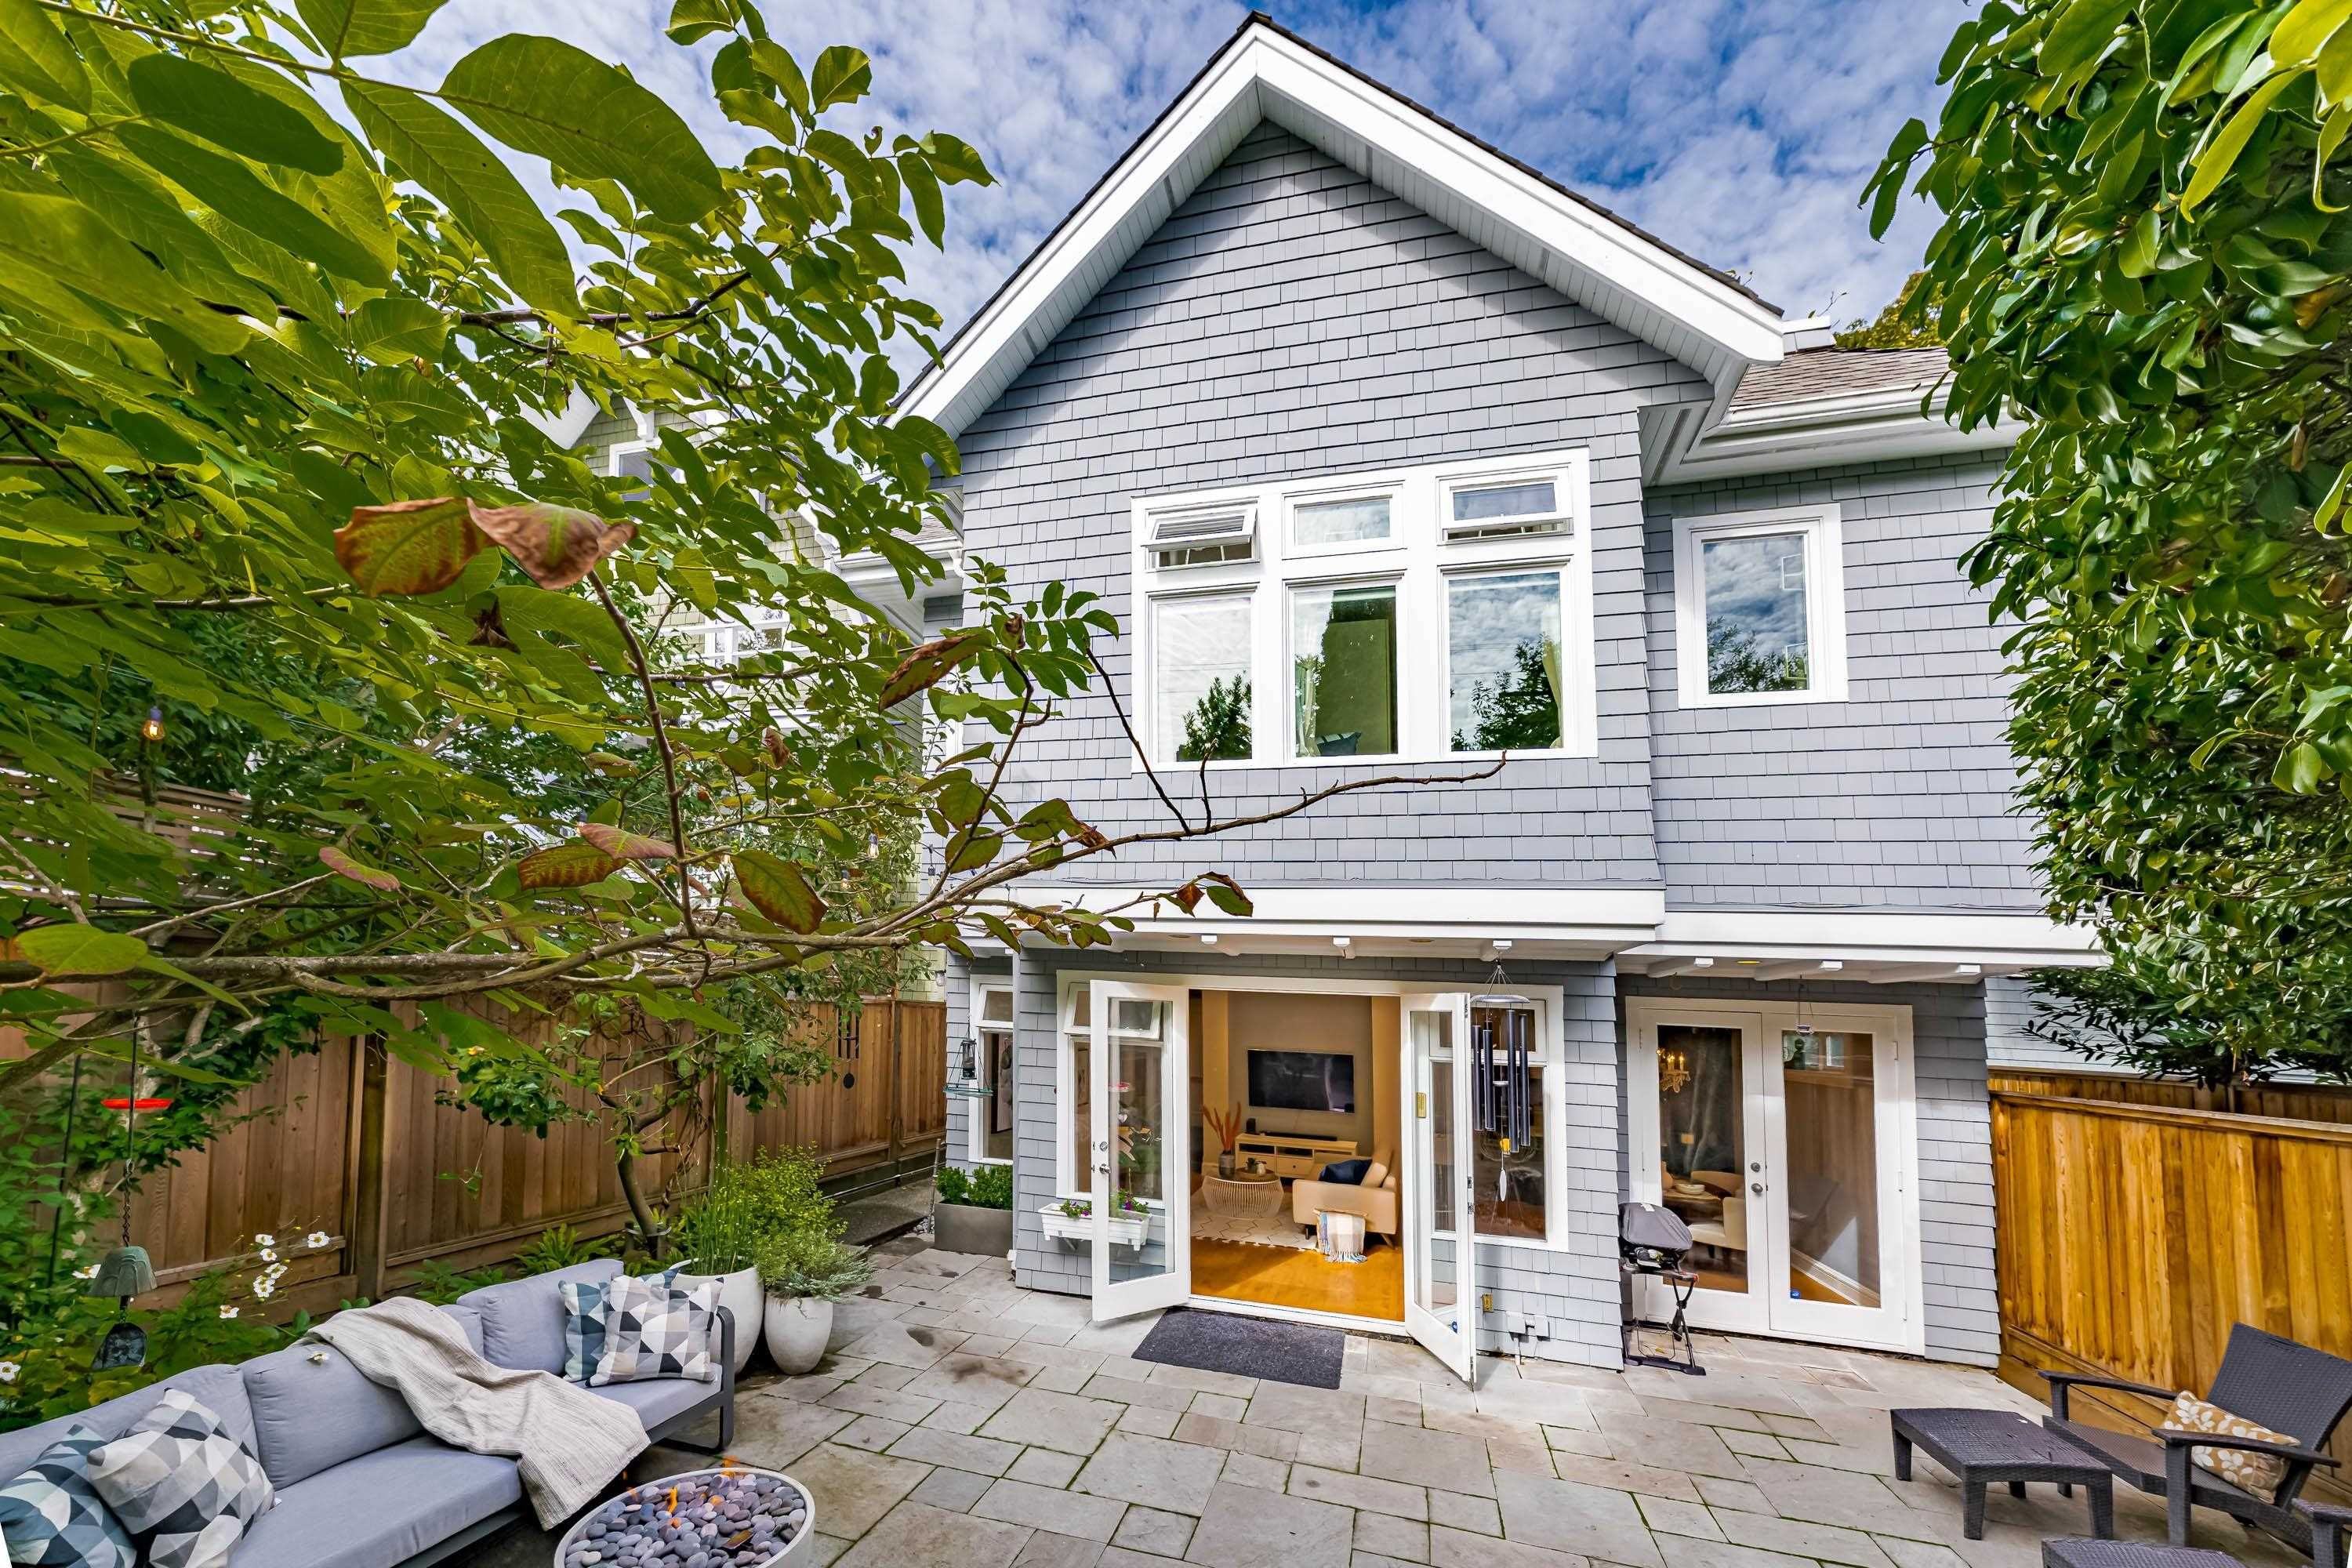 Main Photo: 2878 W 3RD Avenue in Vancouver: Kitsilano 1/2 Duplex for sale (Vancouver West)  : MLS®# R2620030